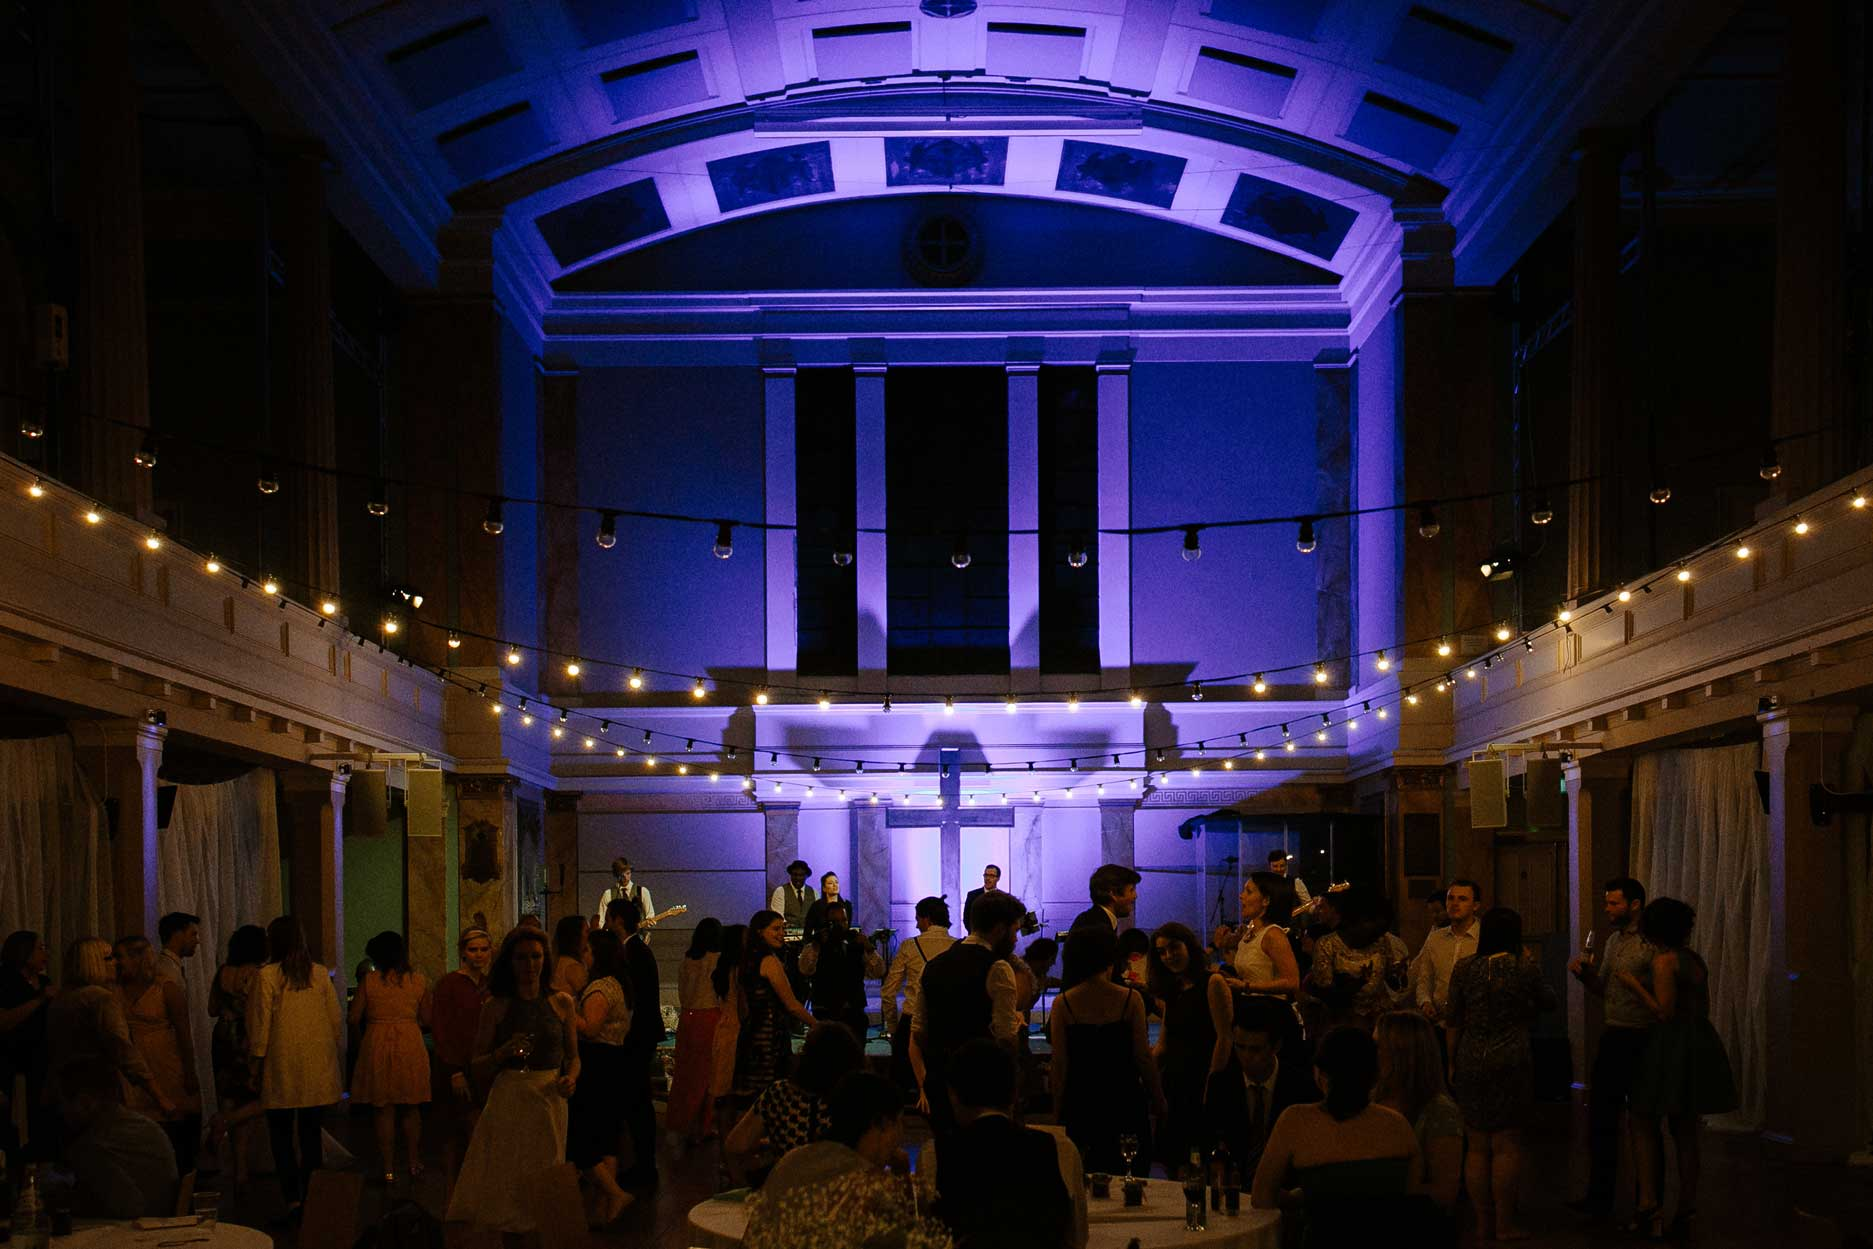 wedding reception with purple event lighting and festoons and dancing at St Mary's Venue Hire, London